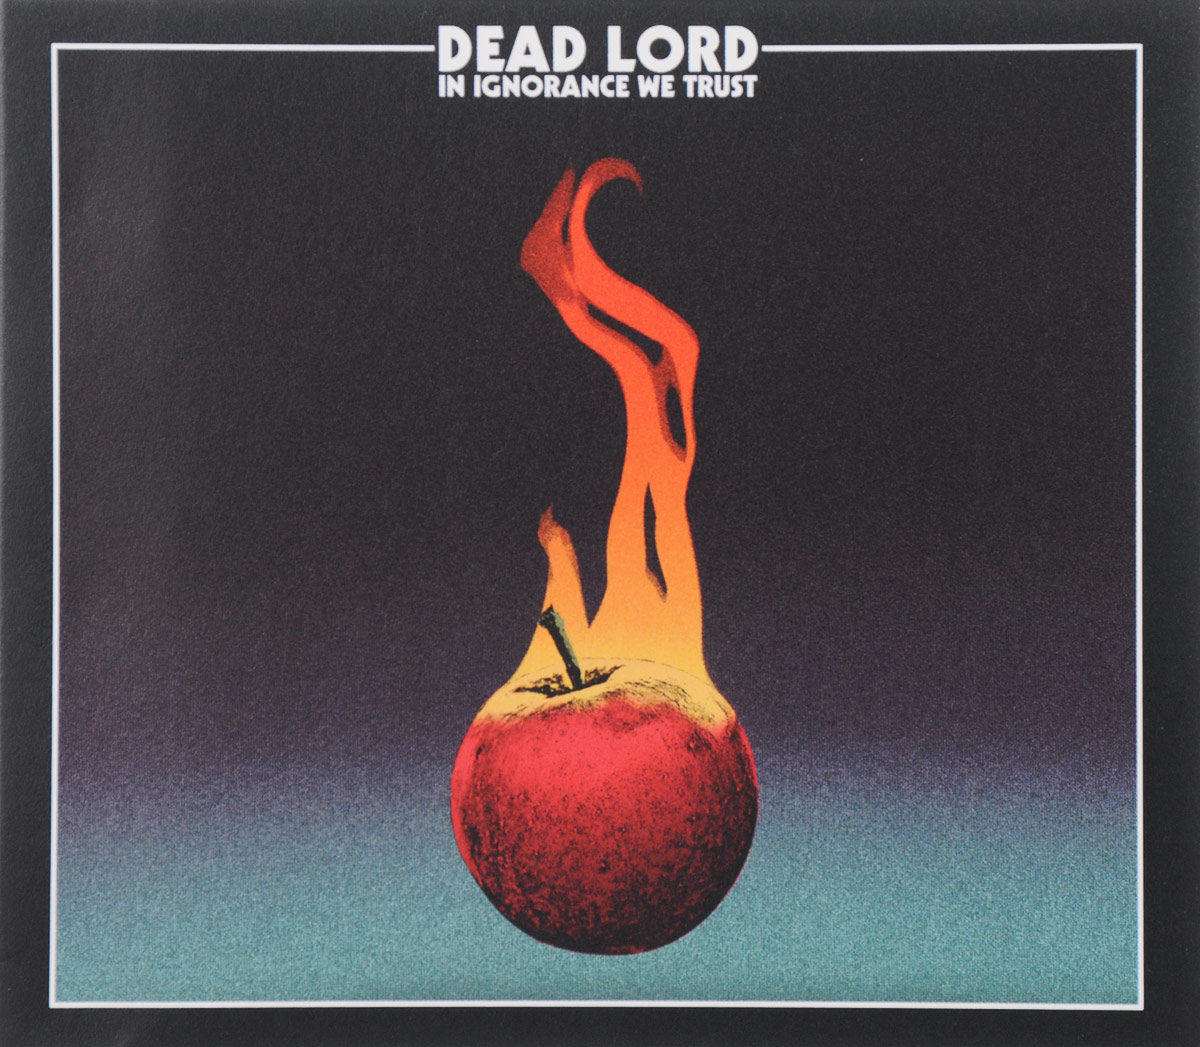 Dead Lord Lord. In Ignorance We Trust